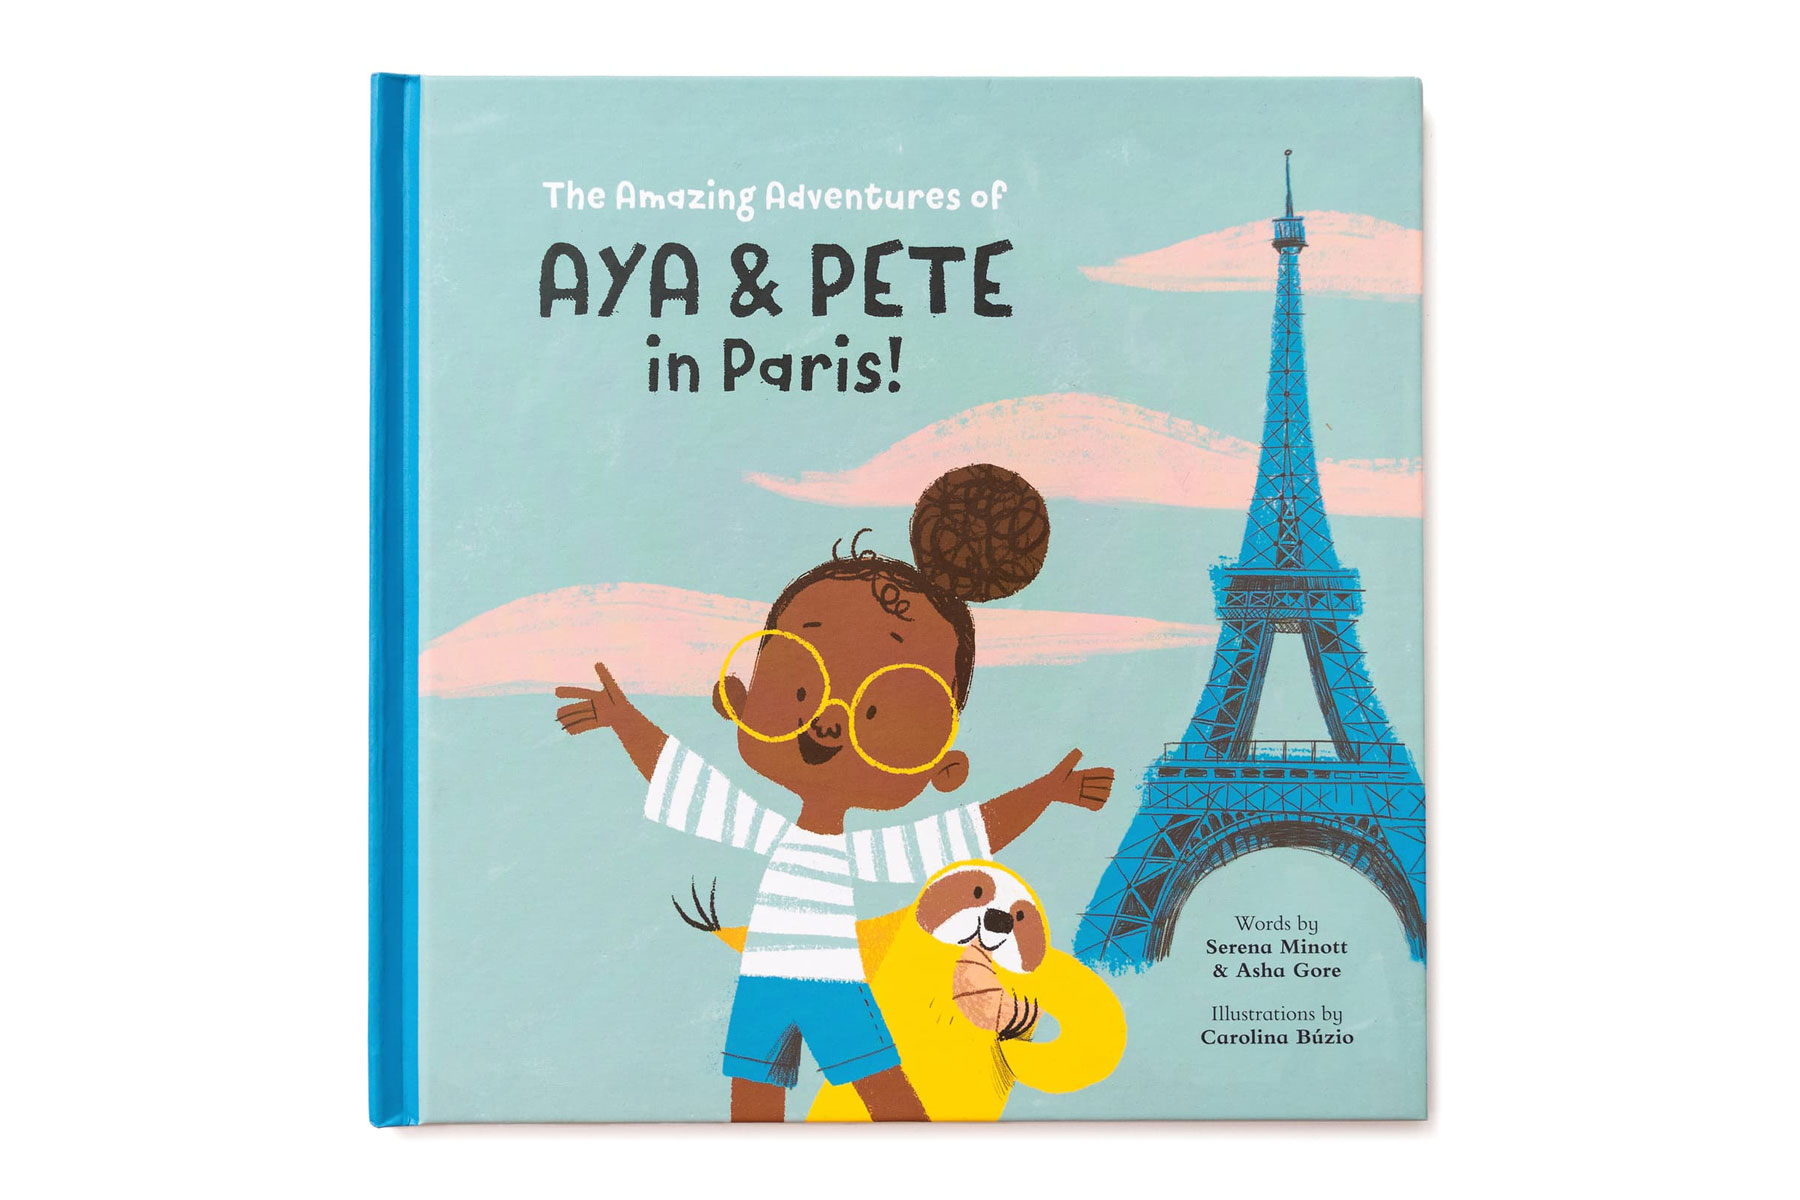 Children's book with illustrations